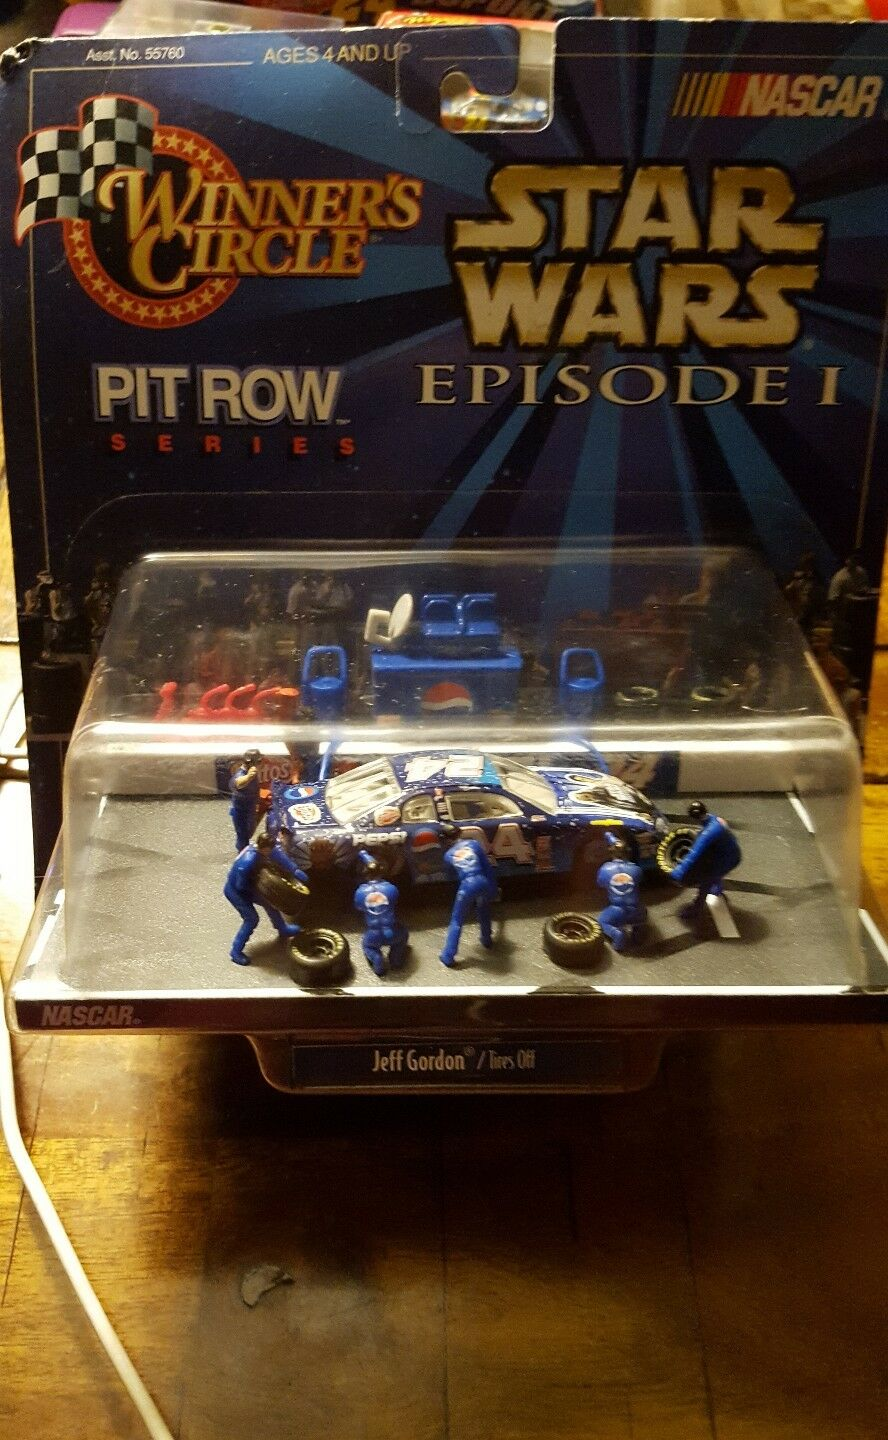 JEFF GORDON Episode I & III STAR WARS [LOT of 2]  Pit Row Series  Action Pepsi